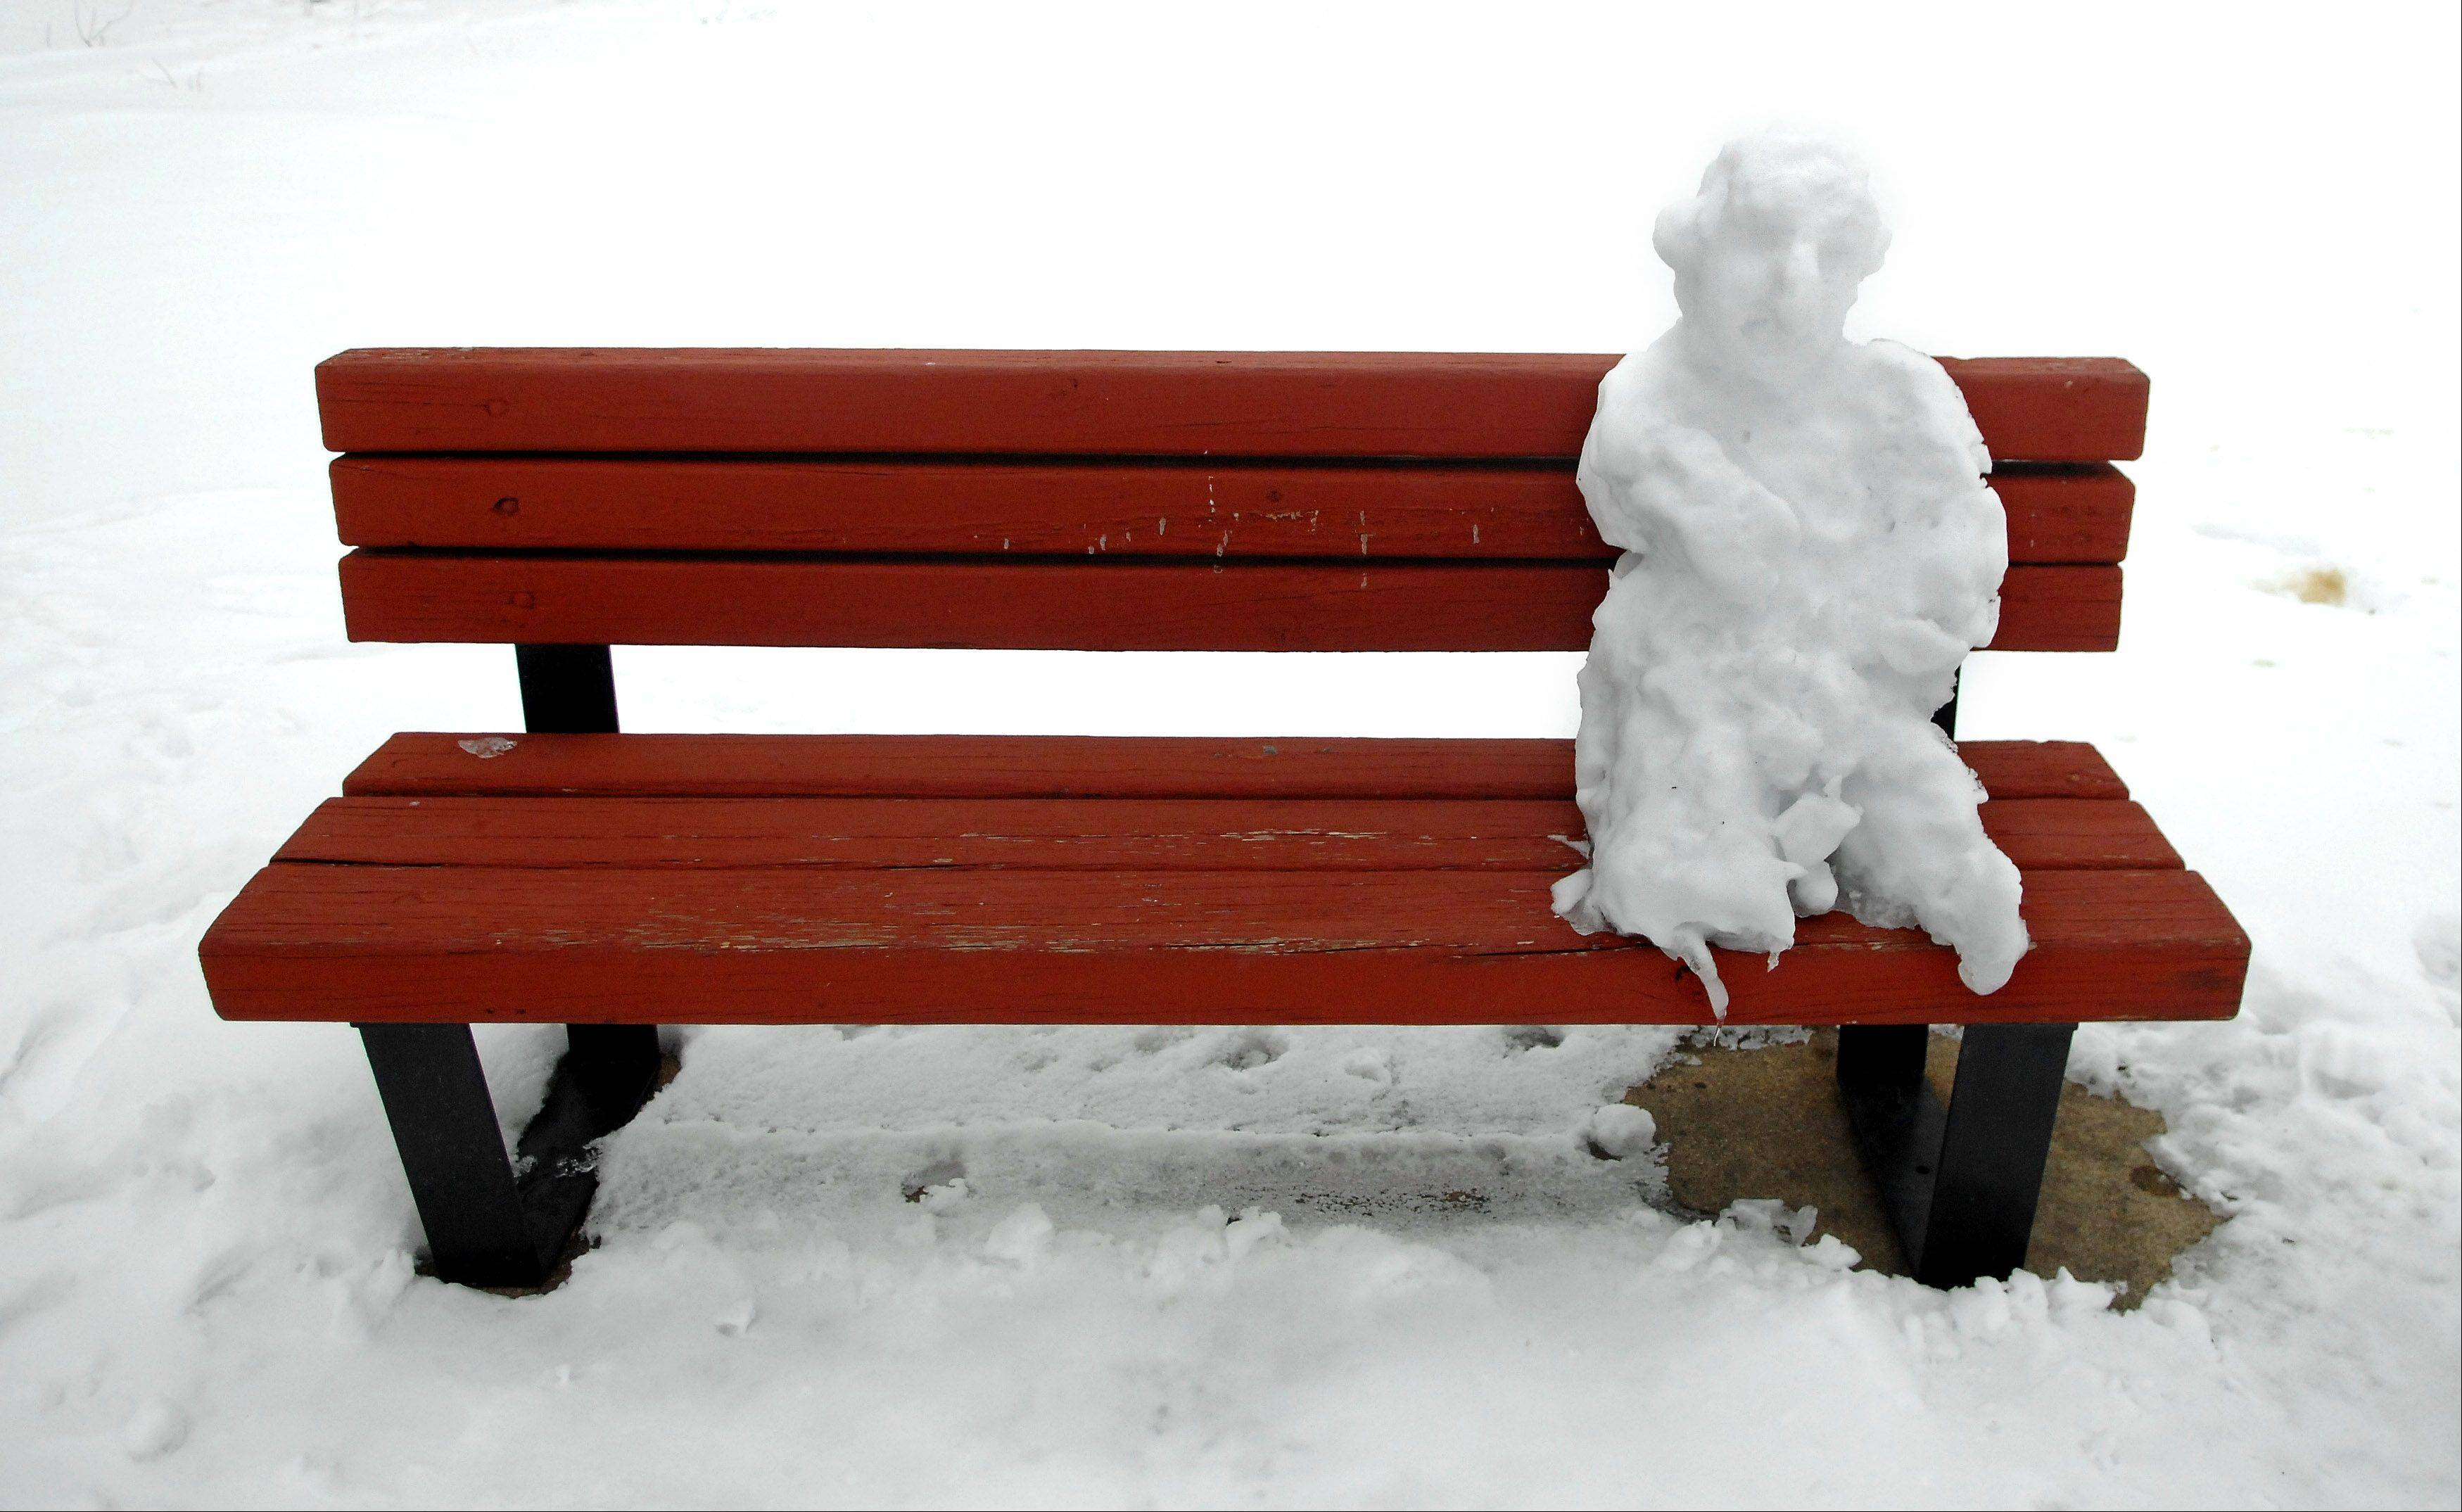 A snowman perched on a bench is the only sign of life at Ferson Creek Park in St. Charles Monday morning.